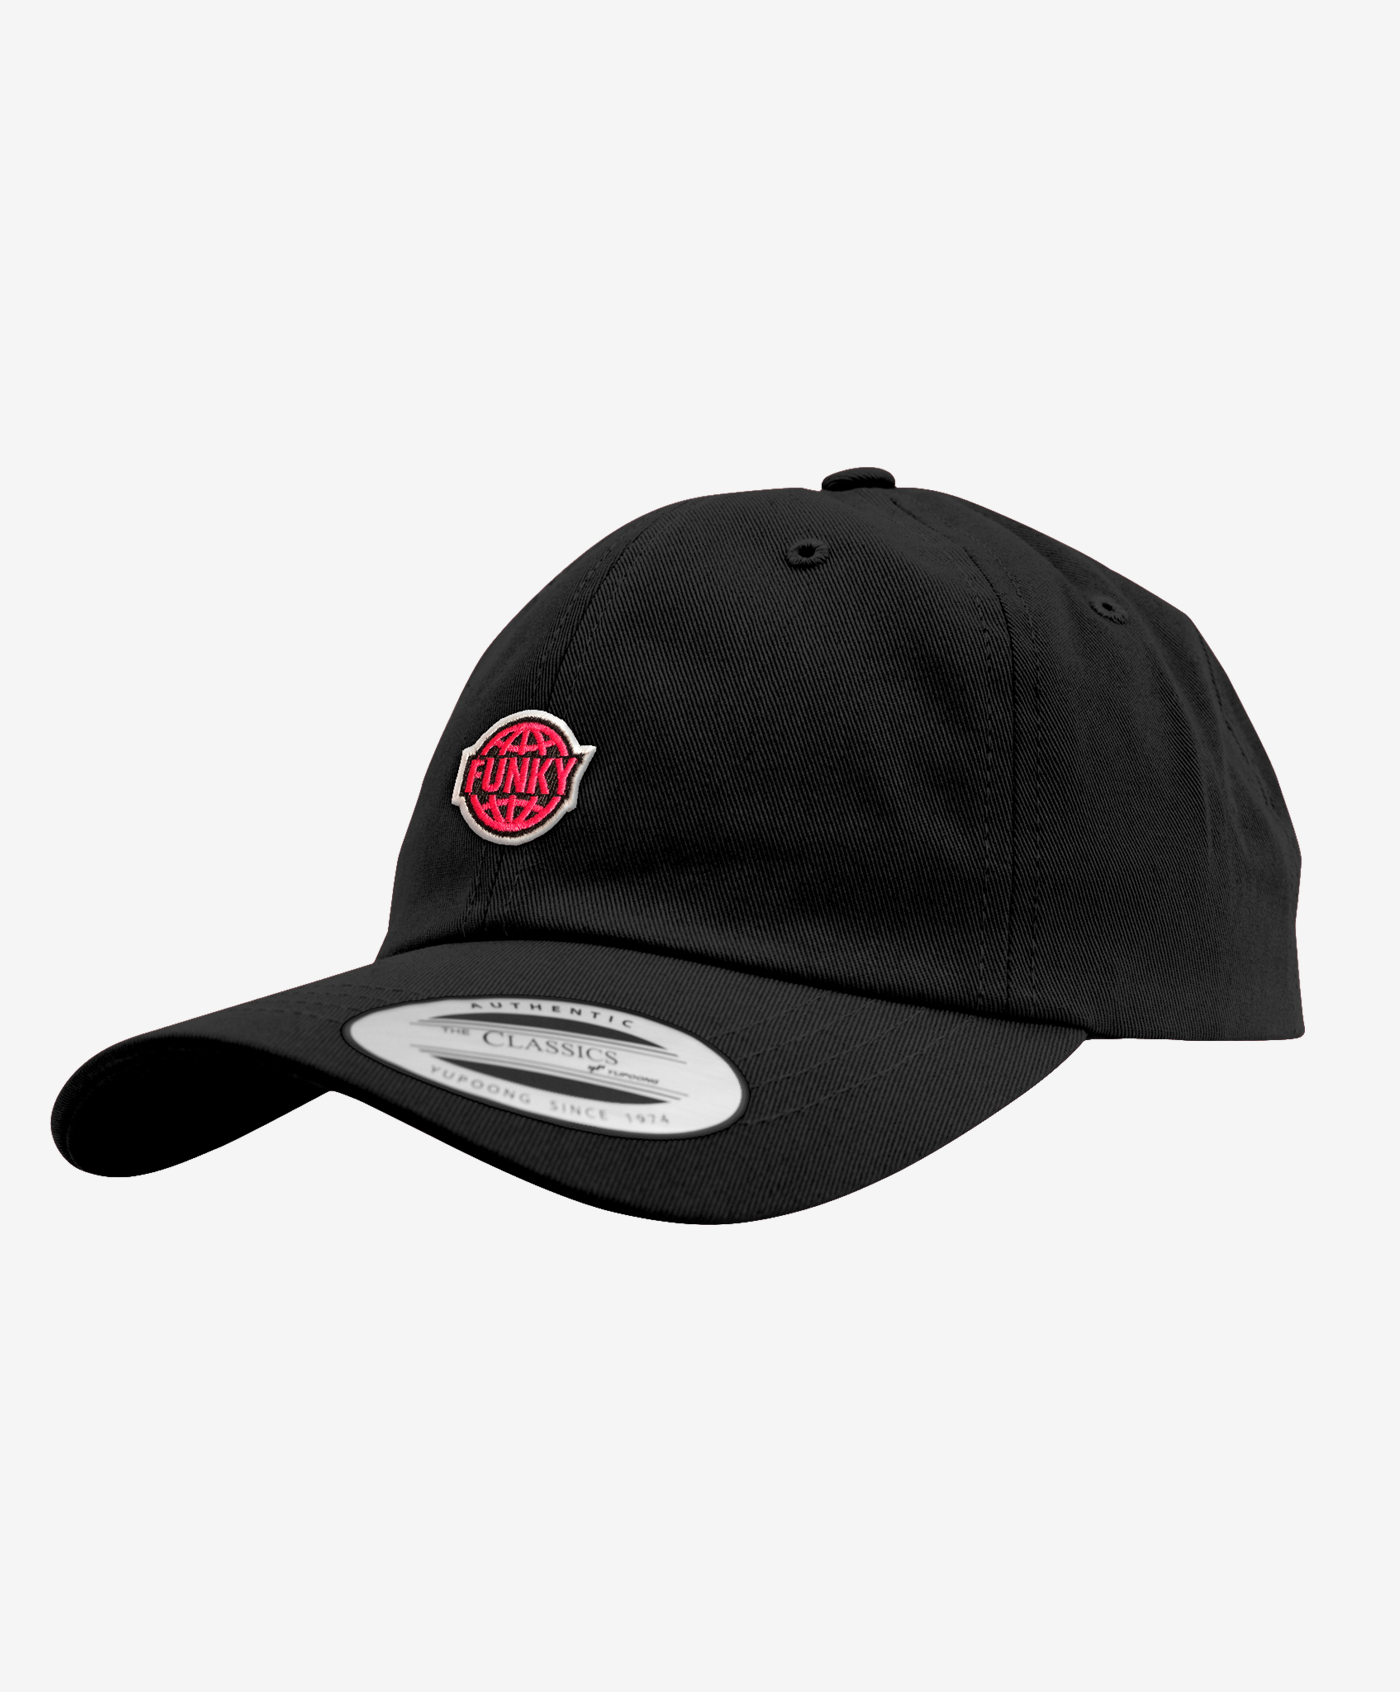 funky-cap-black-front